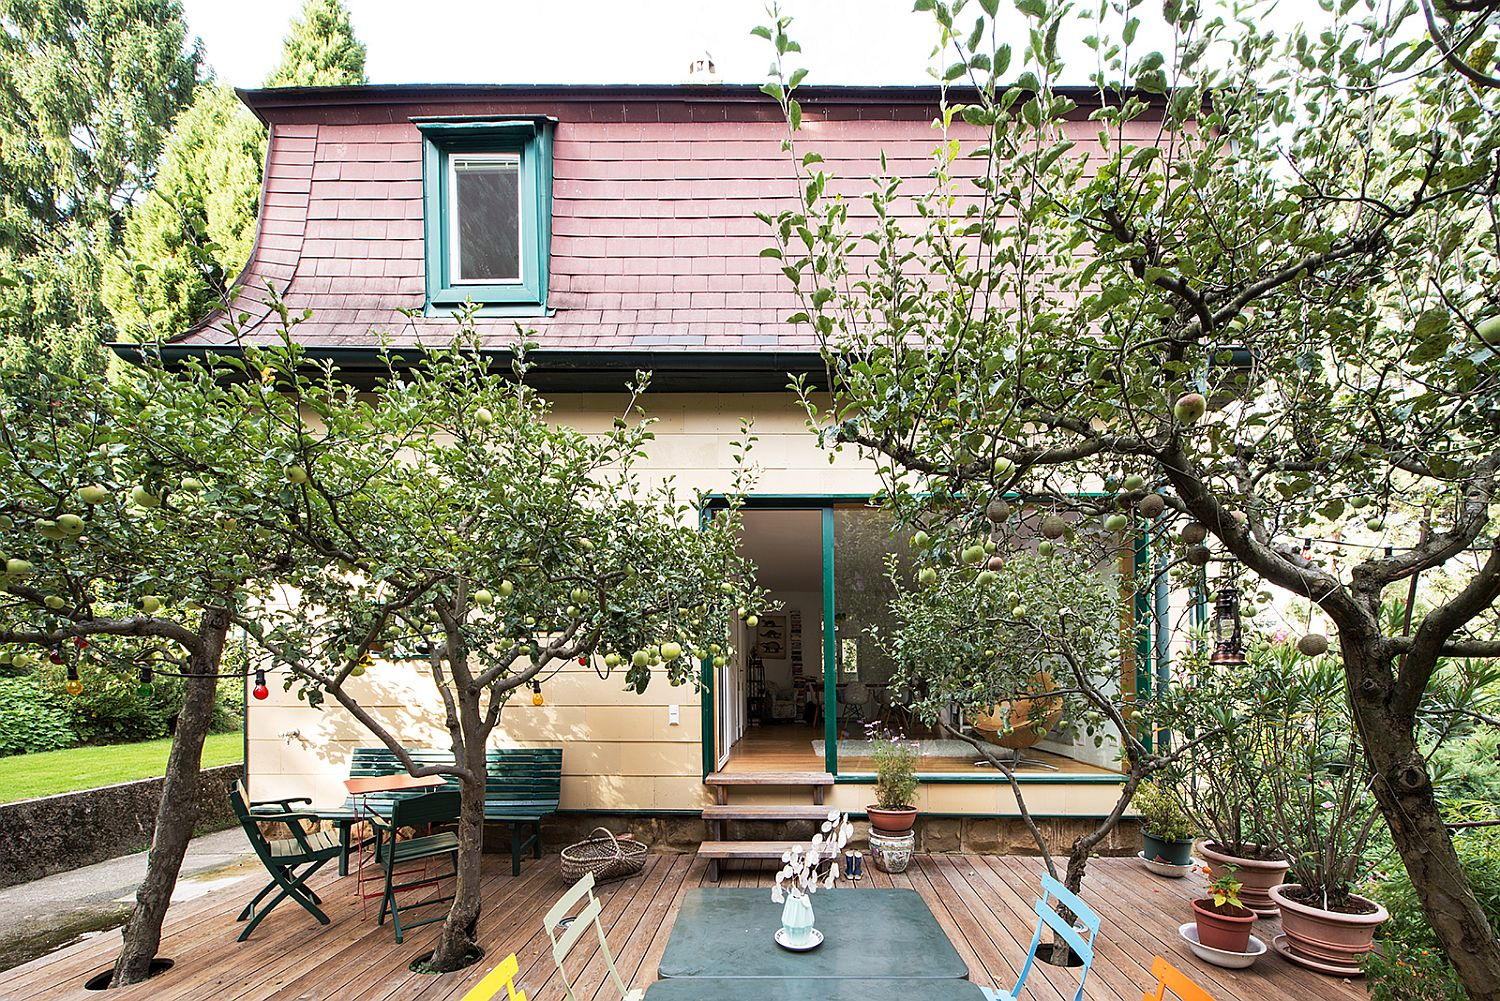 Beuatiful-larch-deck-with-trees-connects-the-revamped-home-with-the-enchanting-shed